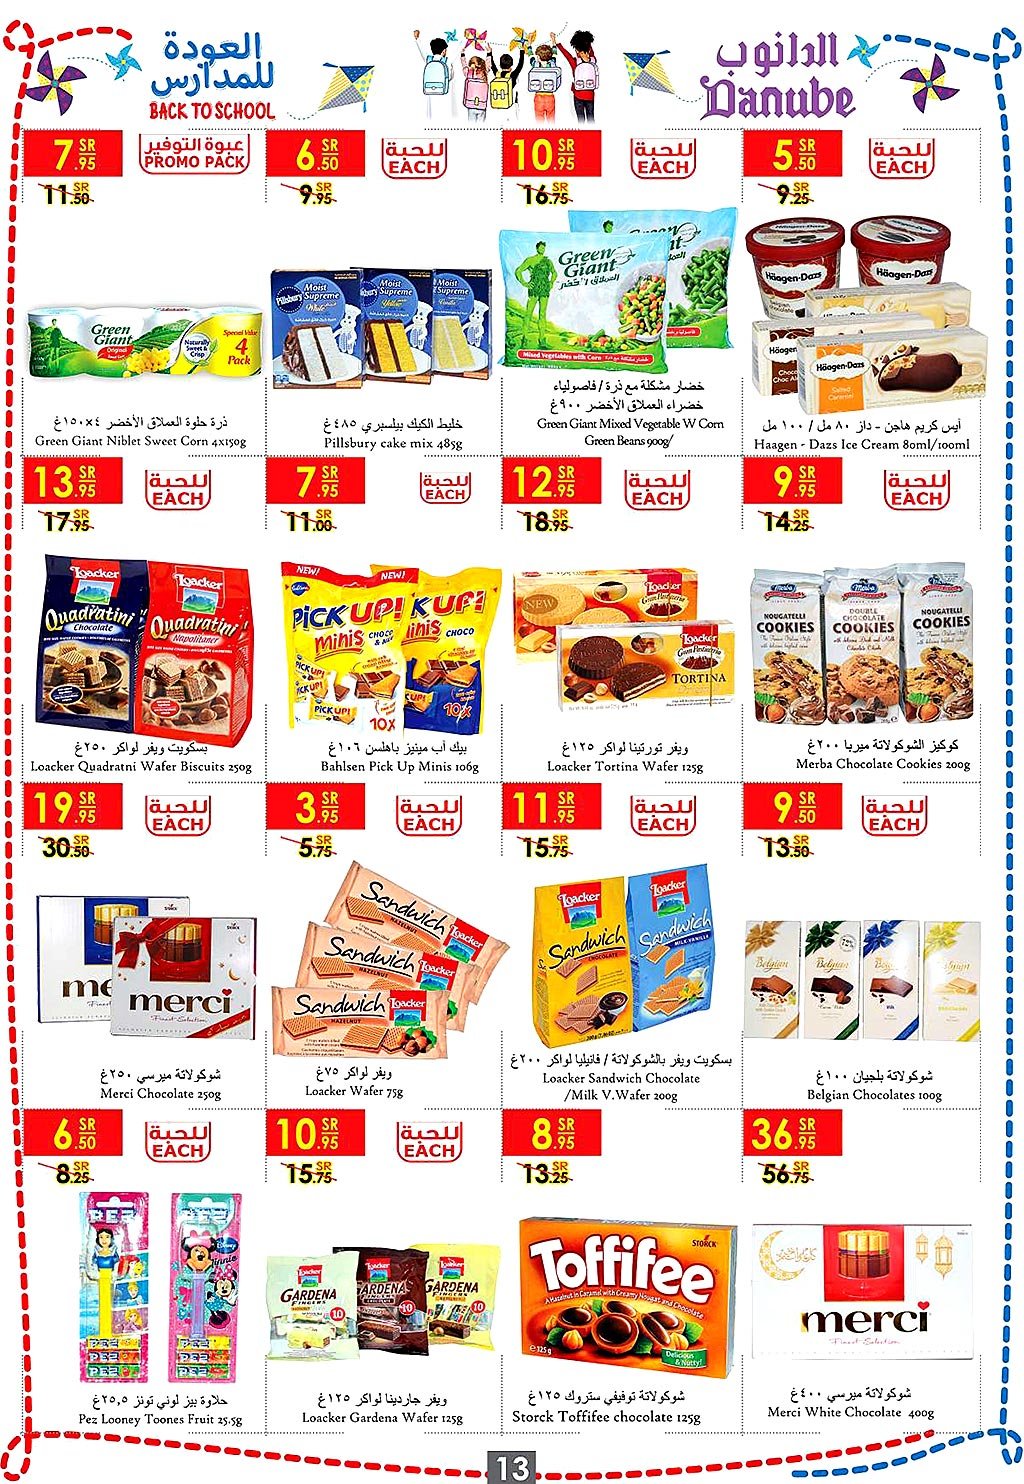 danube offers from 7aug to 21aug 2019 page number 12 عروض الدانوب من 7 أغسطس حتى 21 أغسطس 2019 صفحة رقم 12